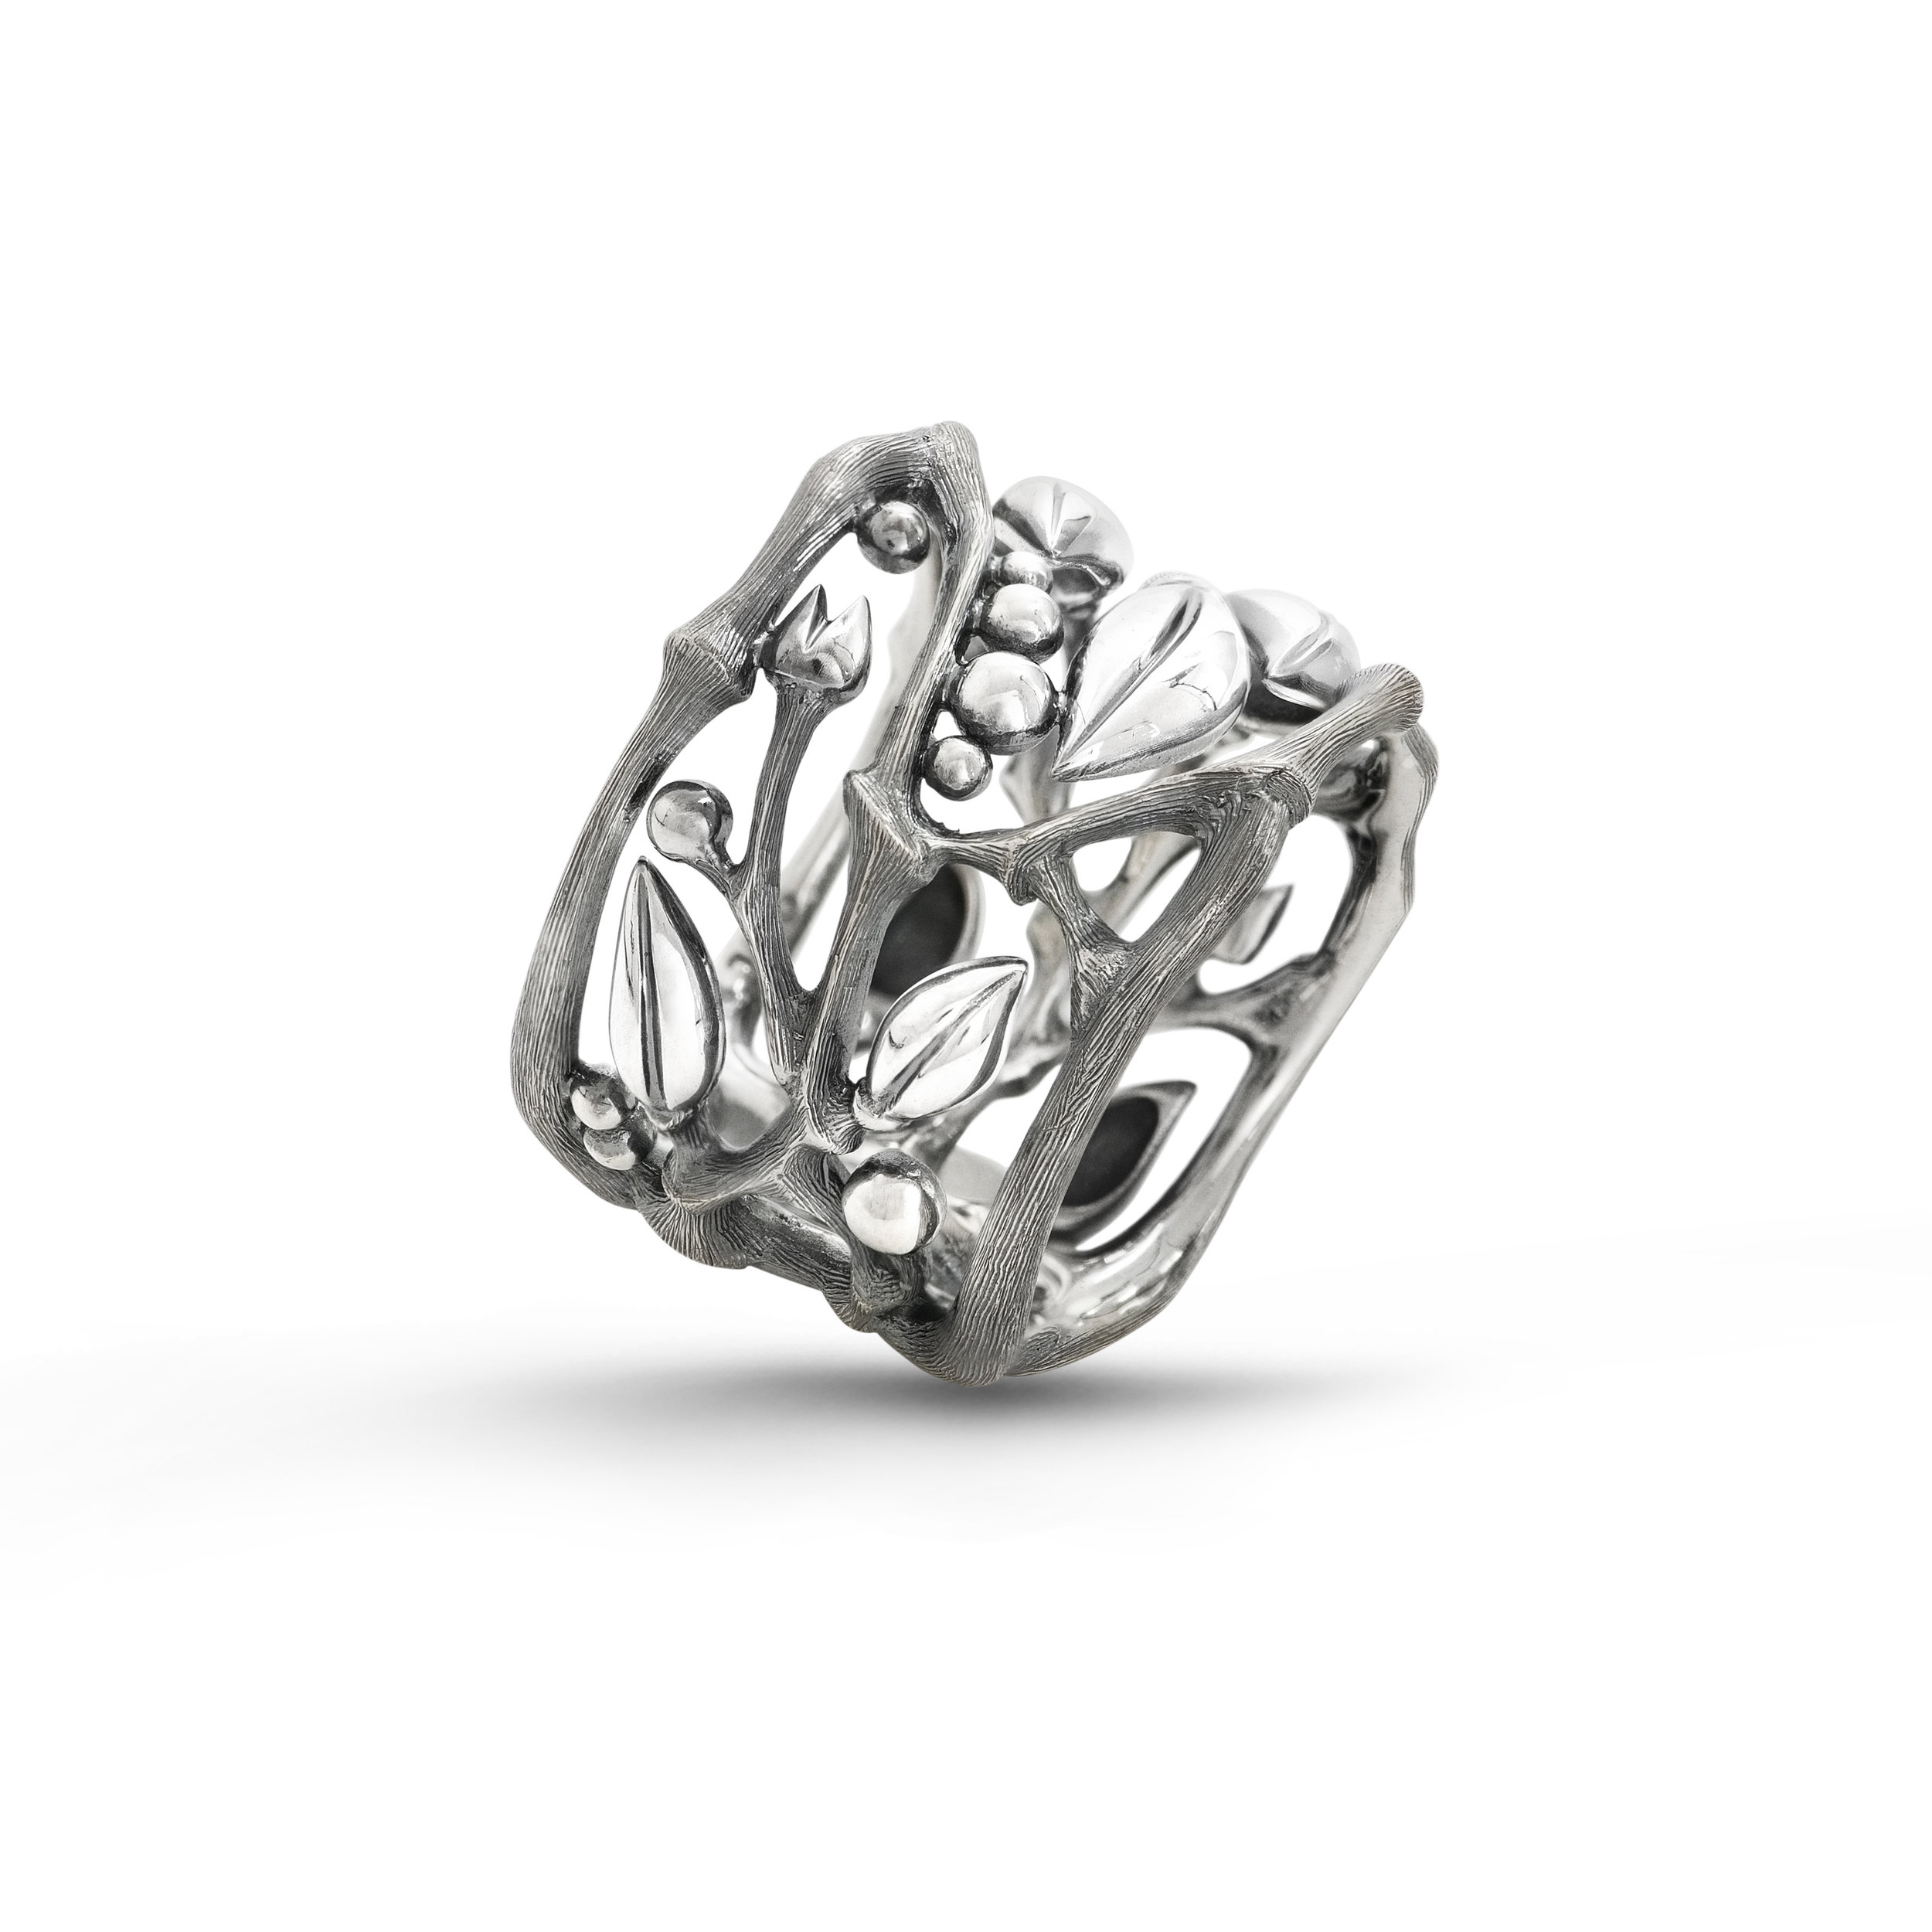 OLE LYNGGAARD - FOREST RING I STERLING SILVER   4.650,-